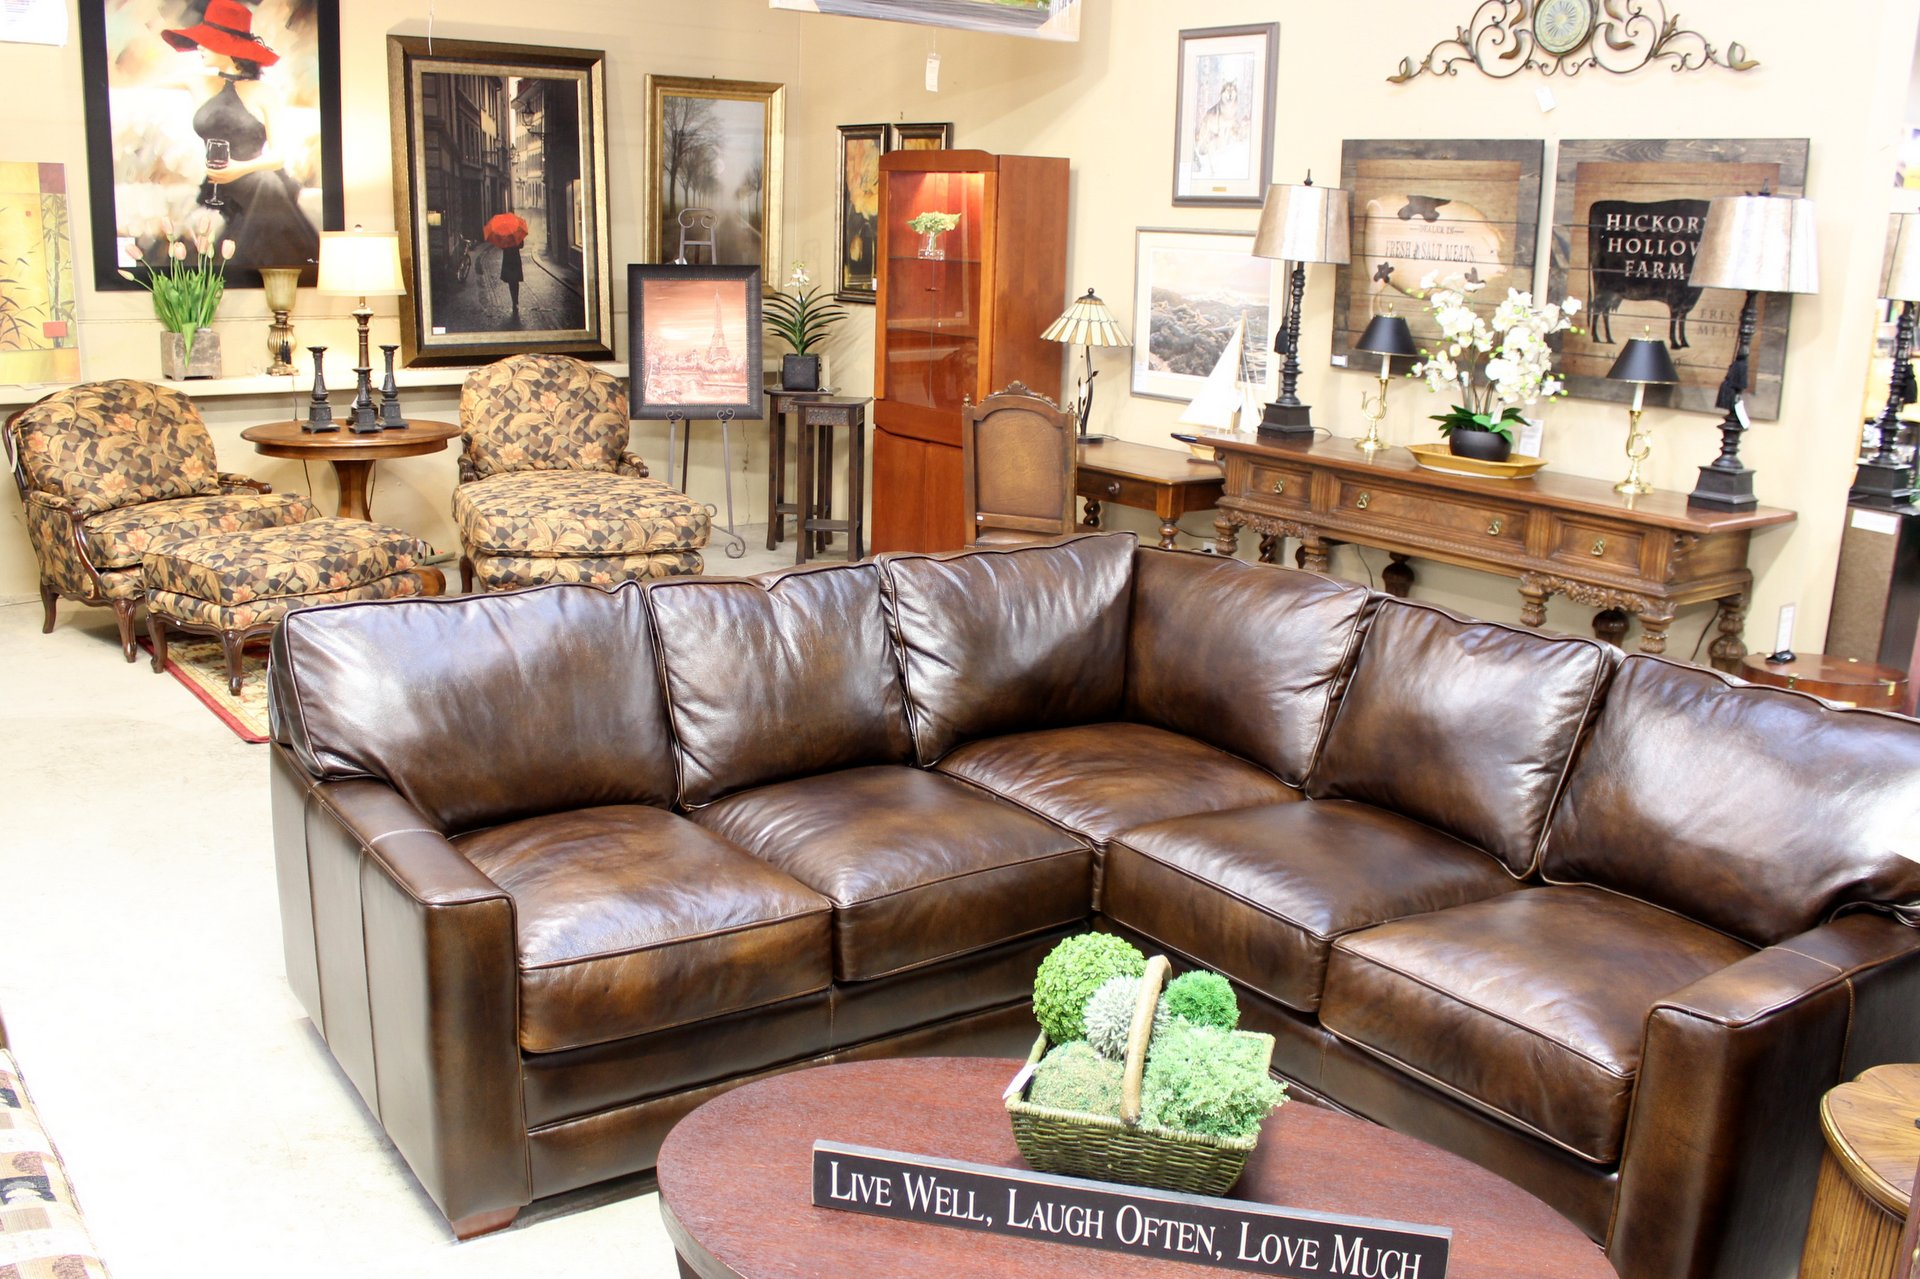 Second Hand Furniture Stores Near Me Endearing Upscale Consignment  Upscale Used Furniture & Decor Design Ideas